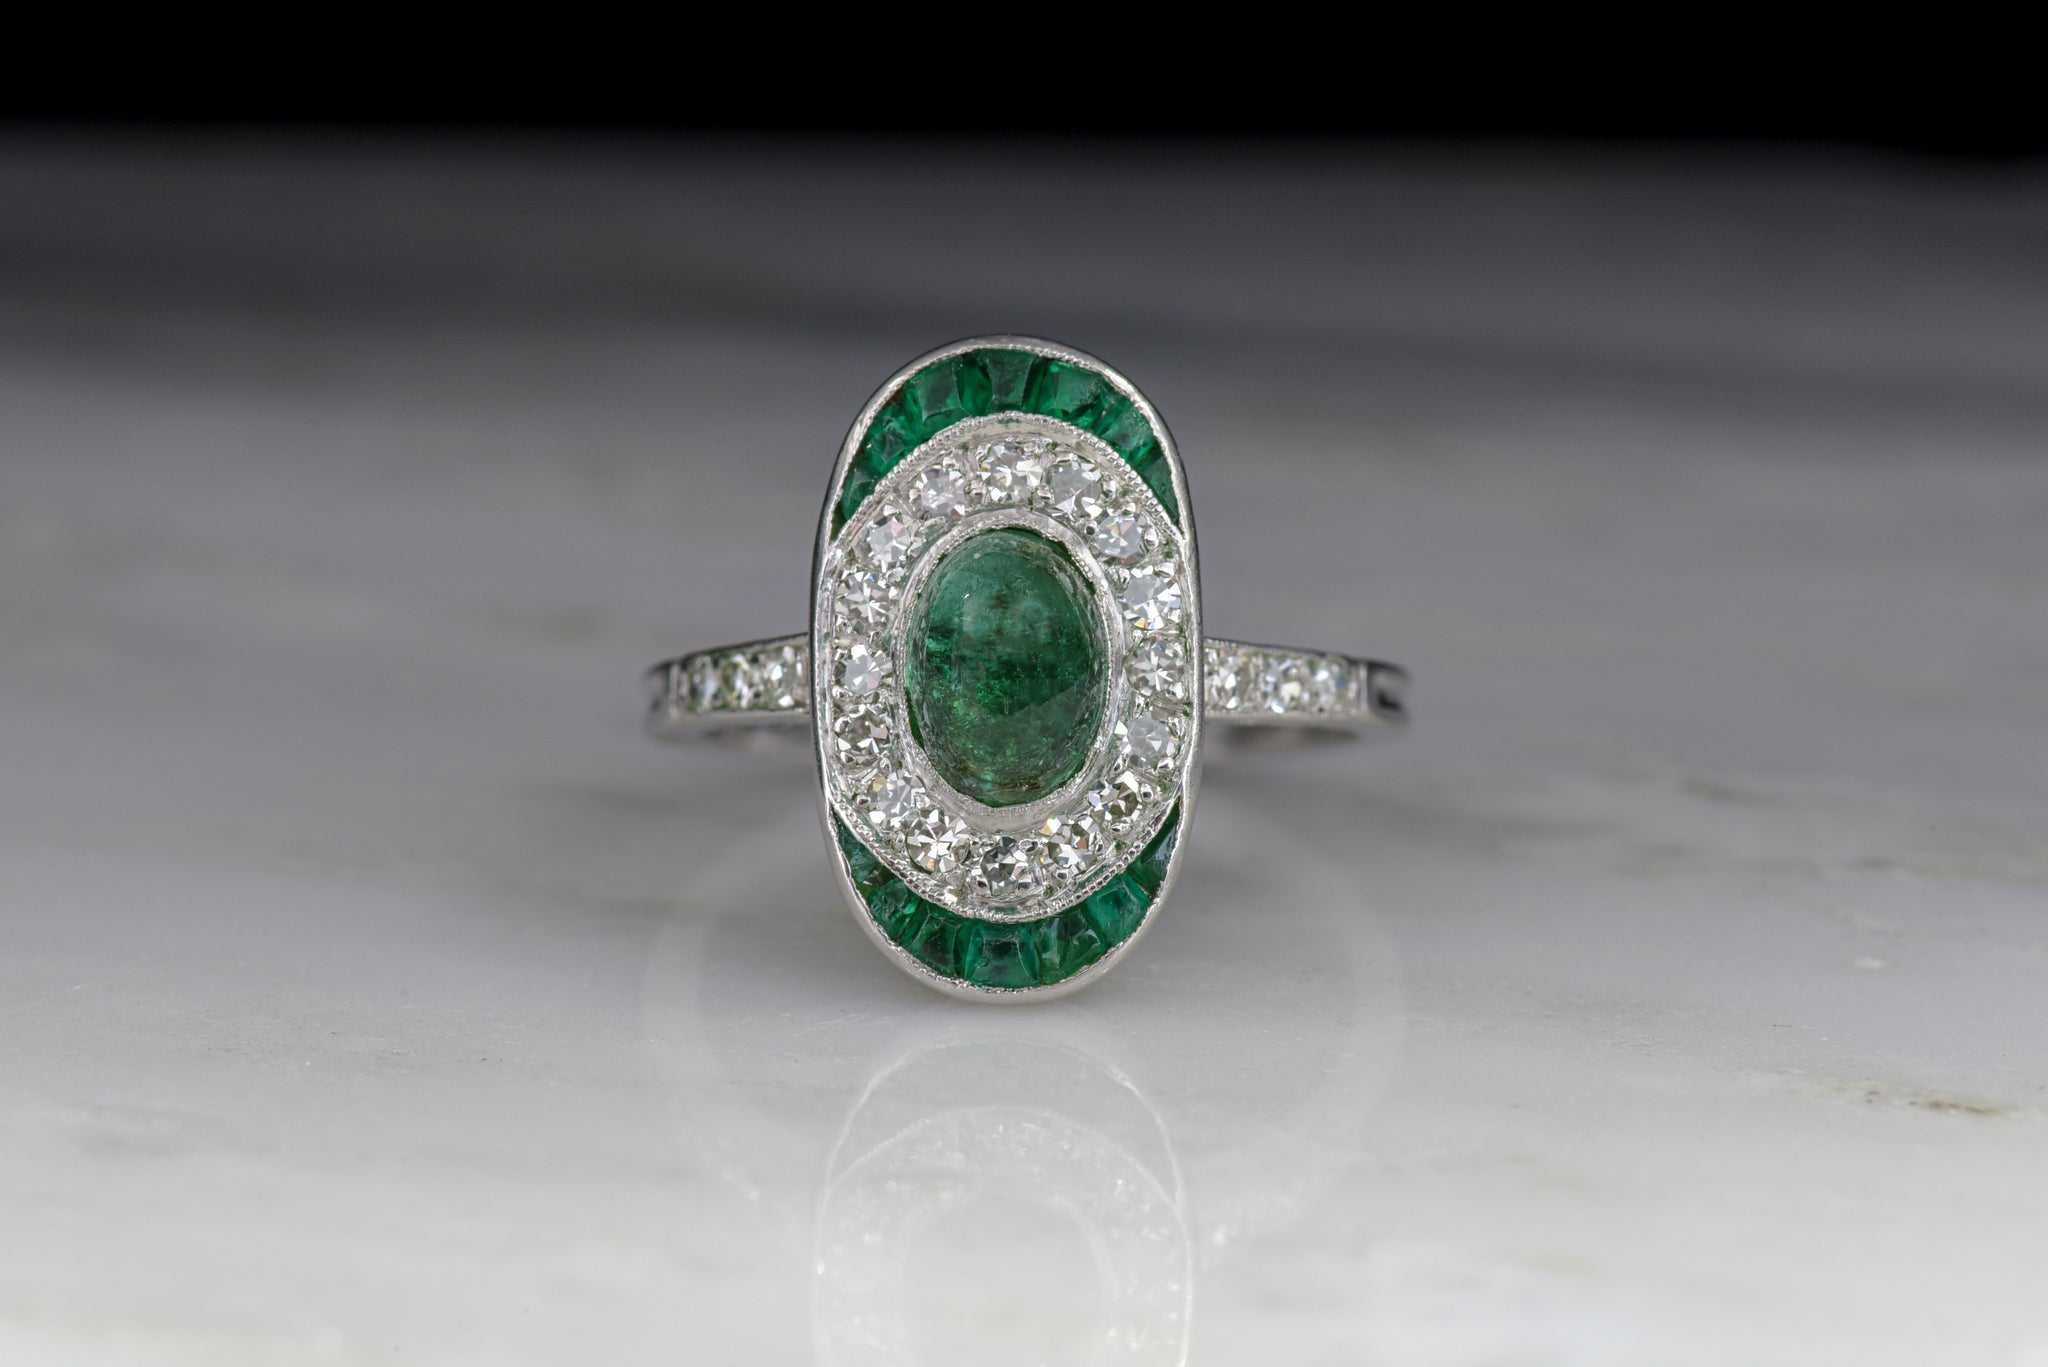 Art Deco Emerald, Diamond, and Platinum Engagement Ring or Cocktail Ring